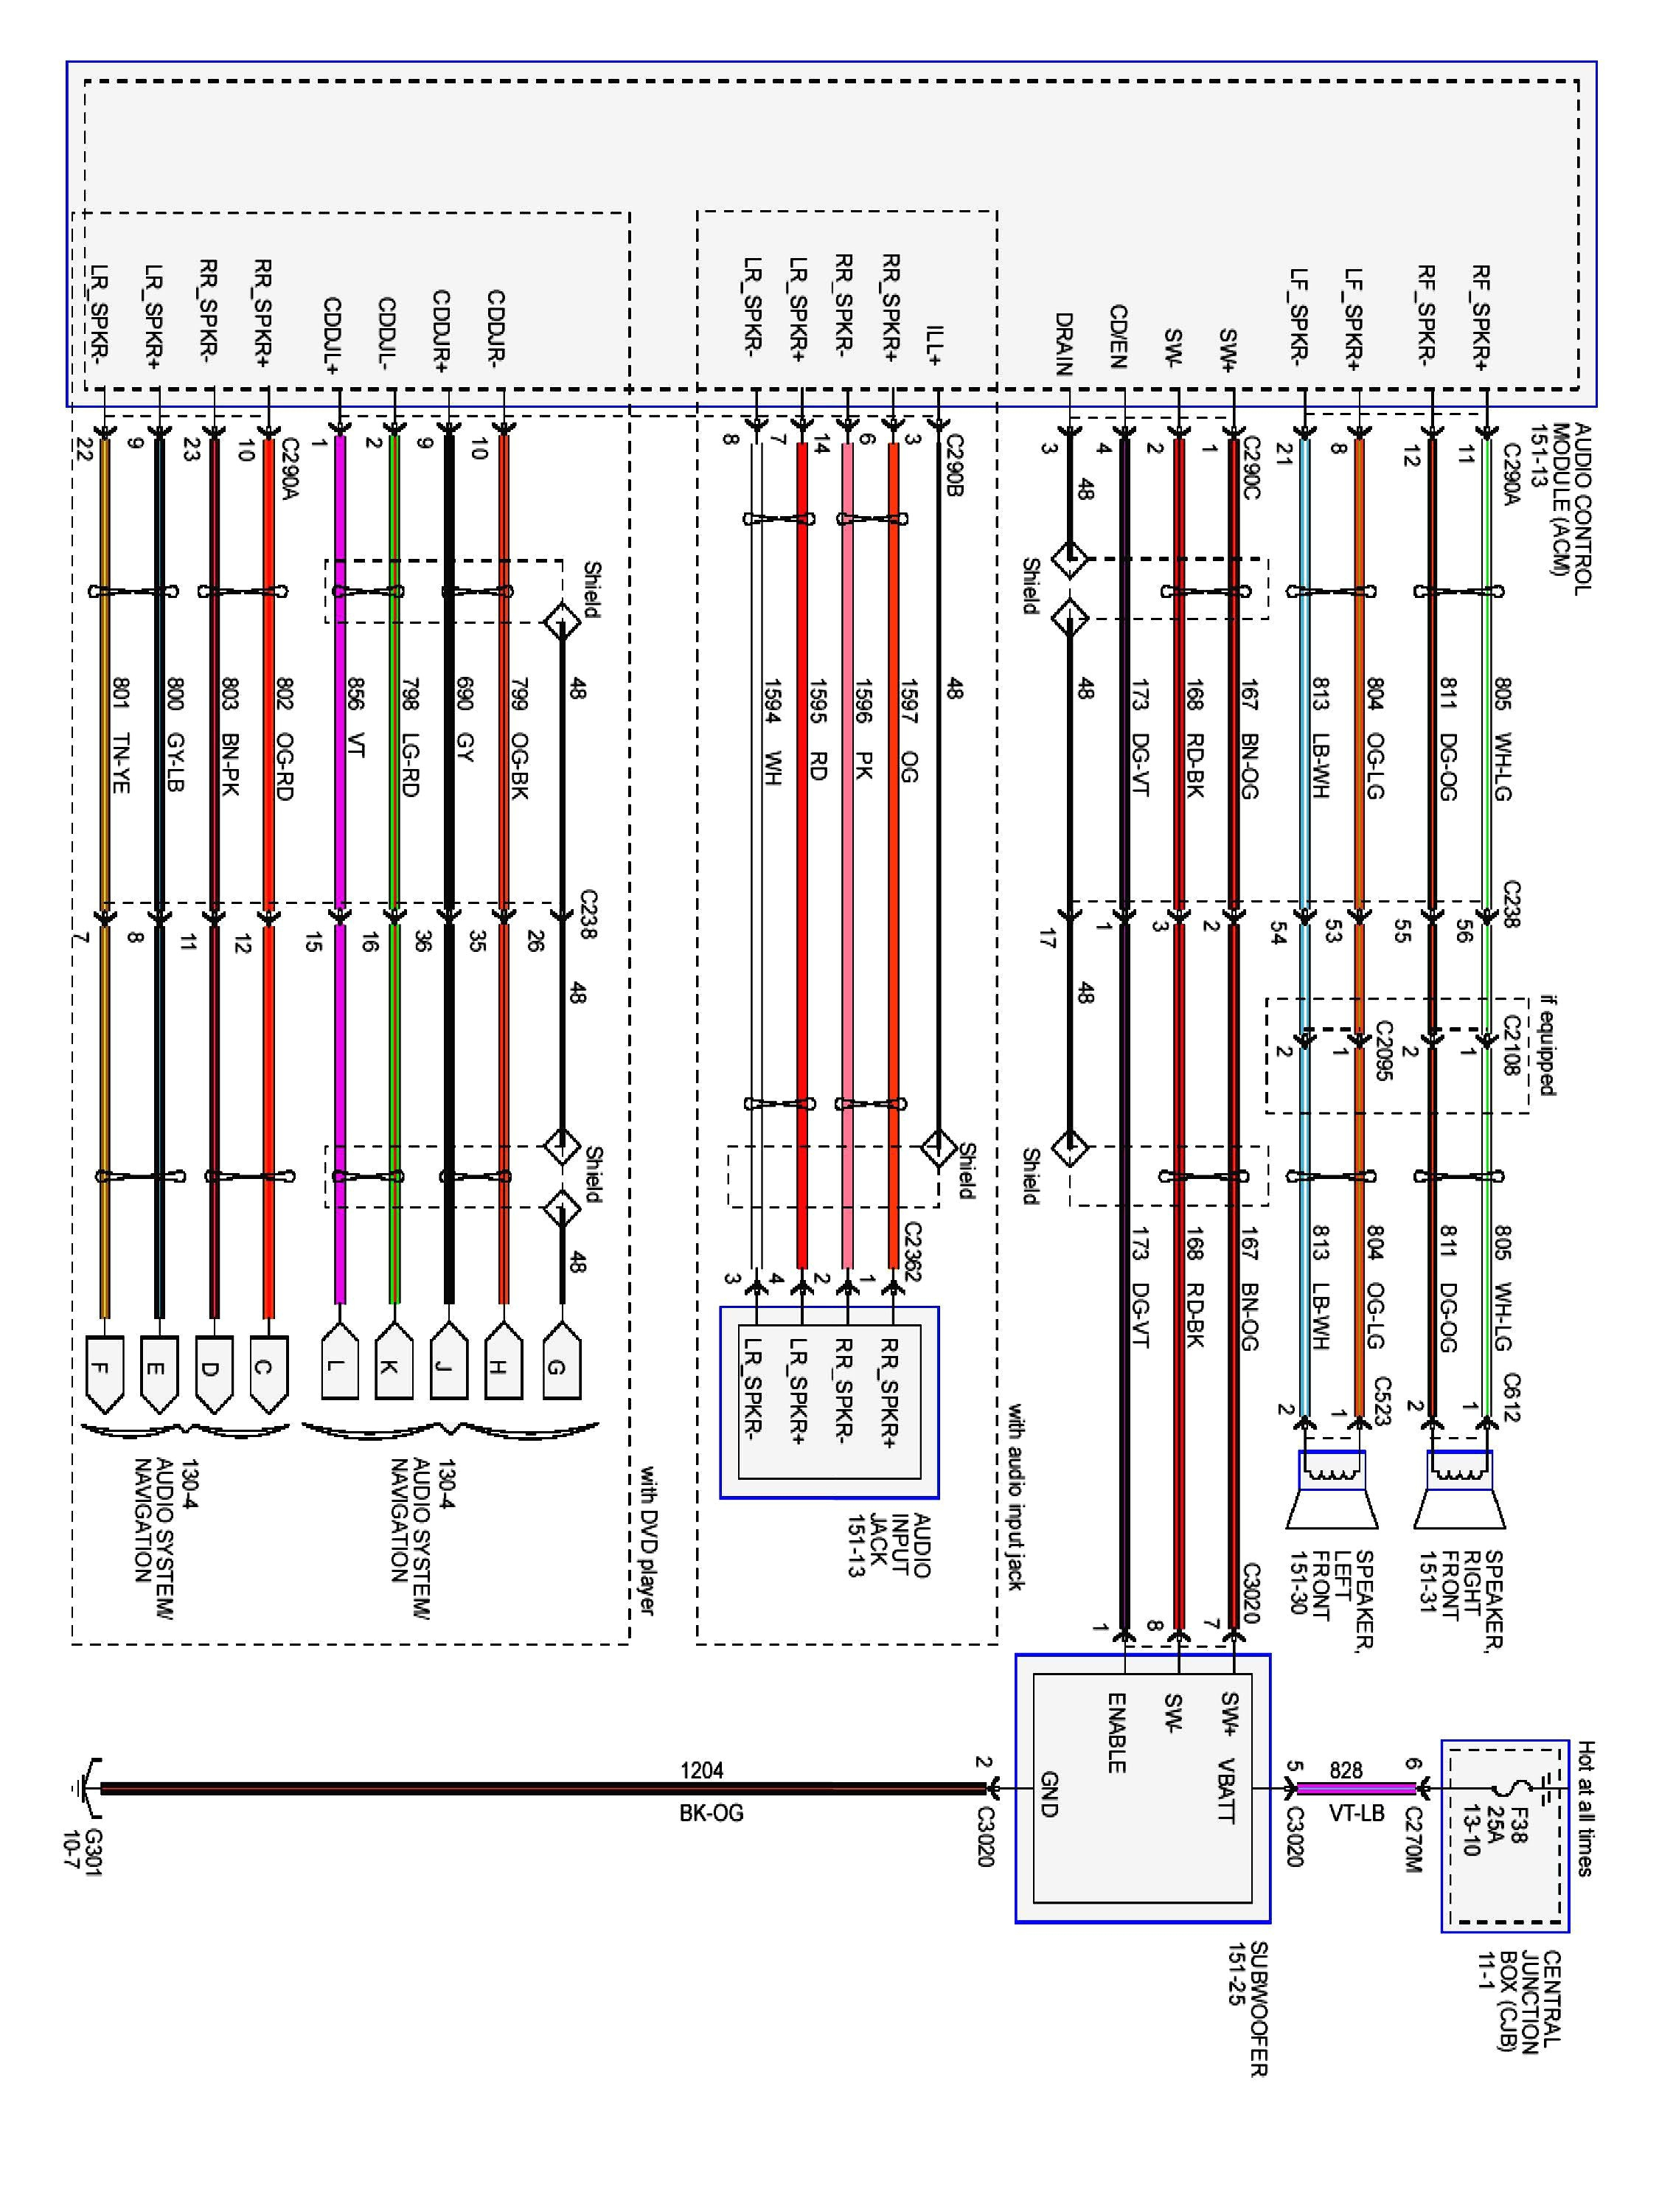 91 Ford Wiring Harness Library Mustang Fuse Box Wire Color 2013 F150 Radio Diagram 1991